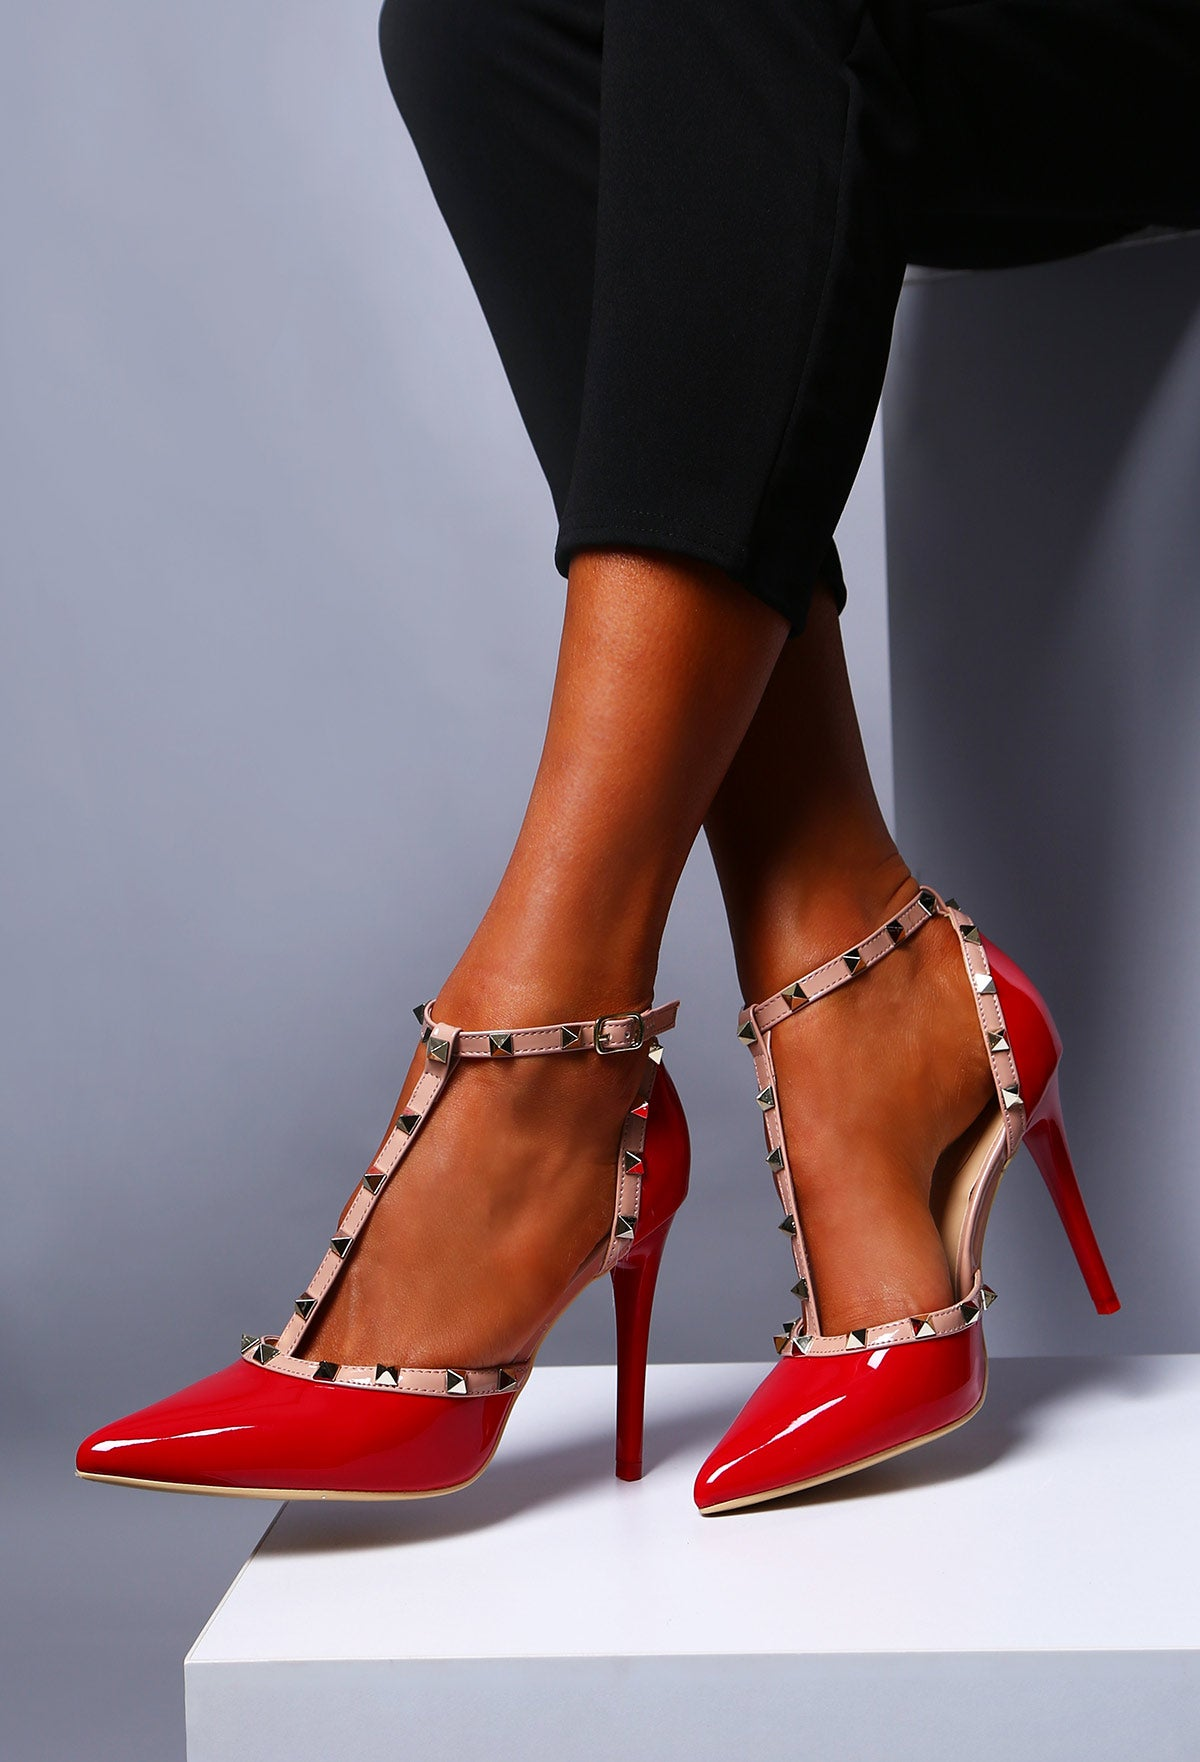 8c837b10709 Rebel Rebel Red Patent Studded T-Bar Stiletto Heels – Pink Boutique UK